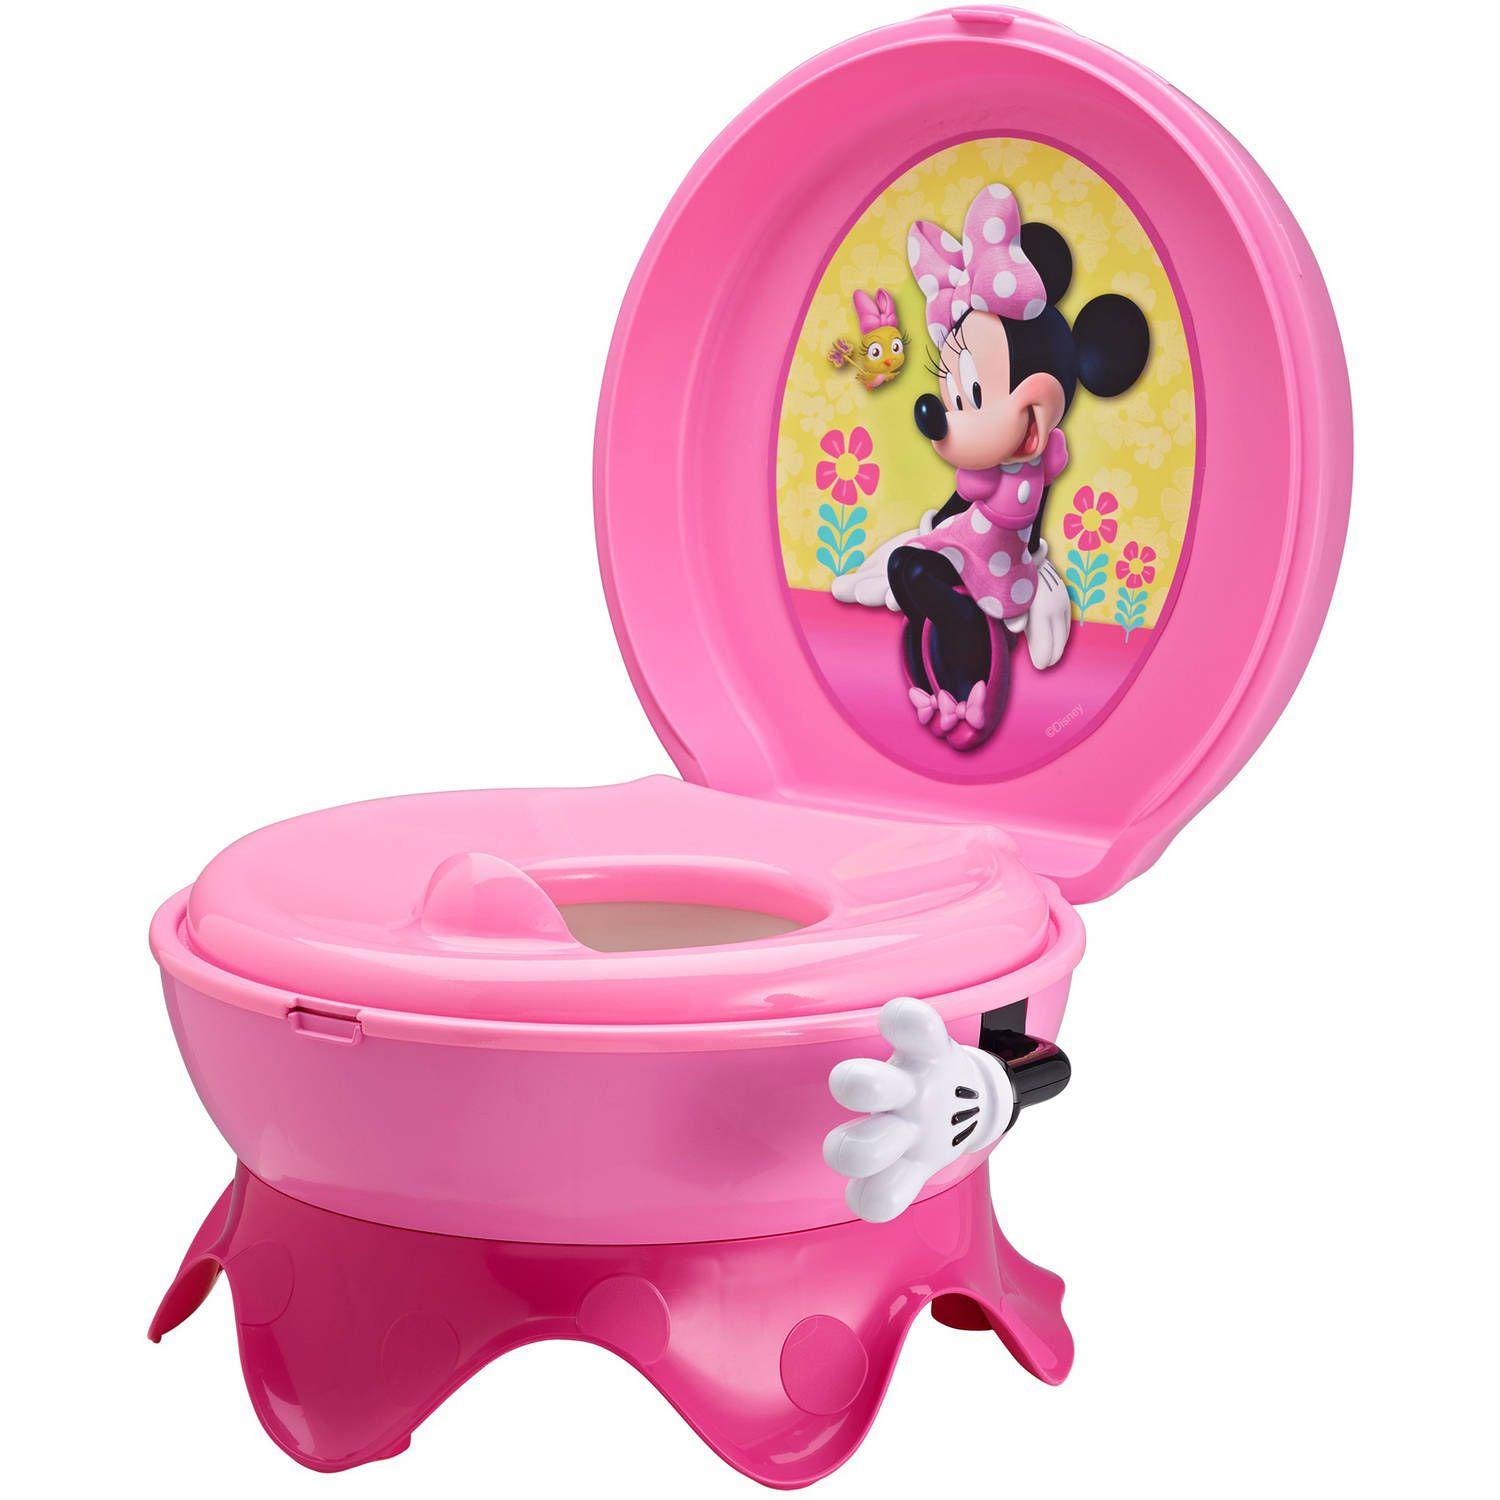 Celebrate Potty Time Success In Style With The Minnie Mouse 3 In 1